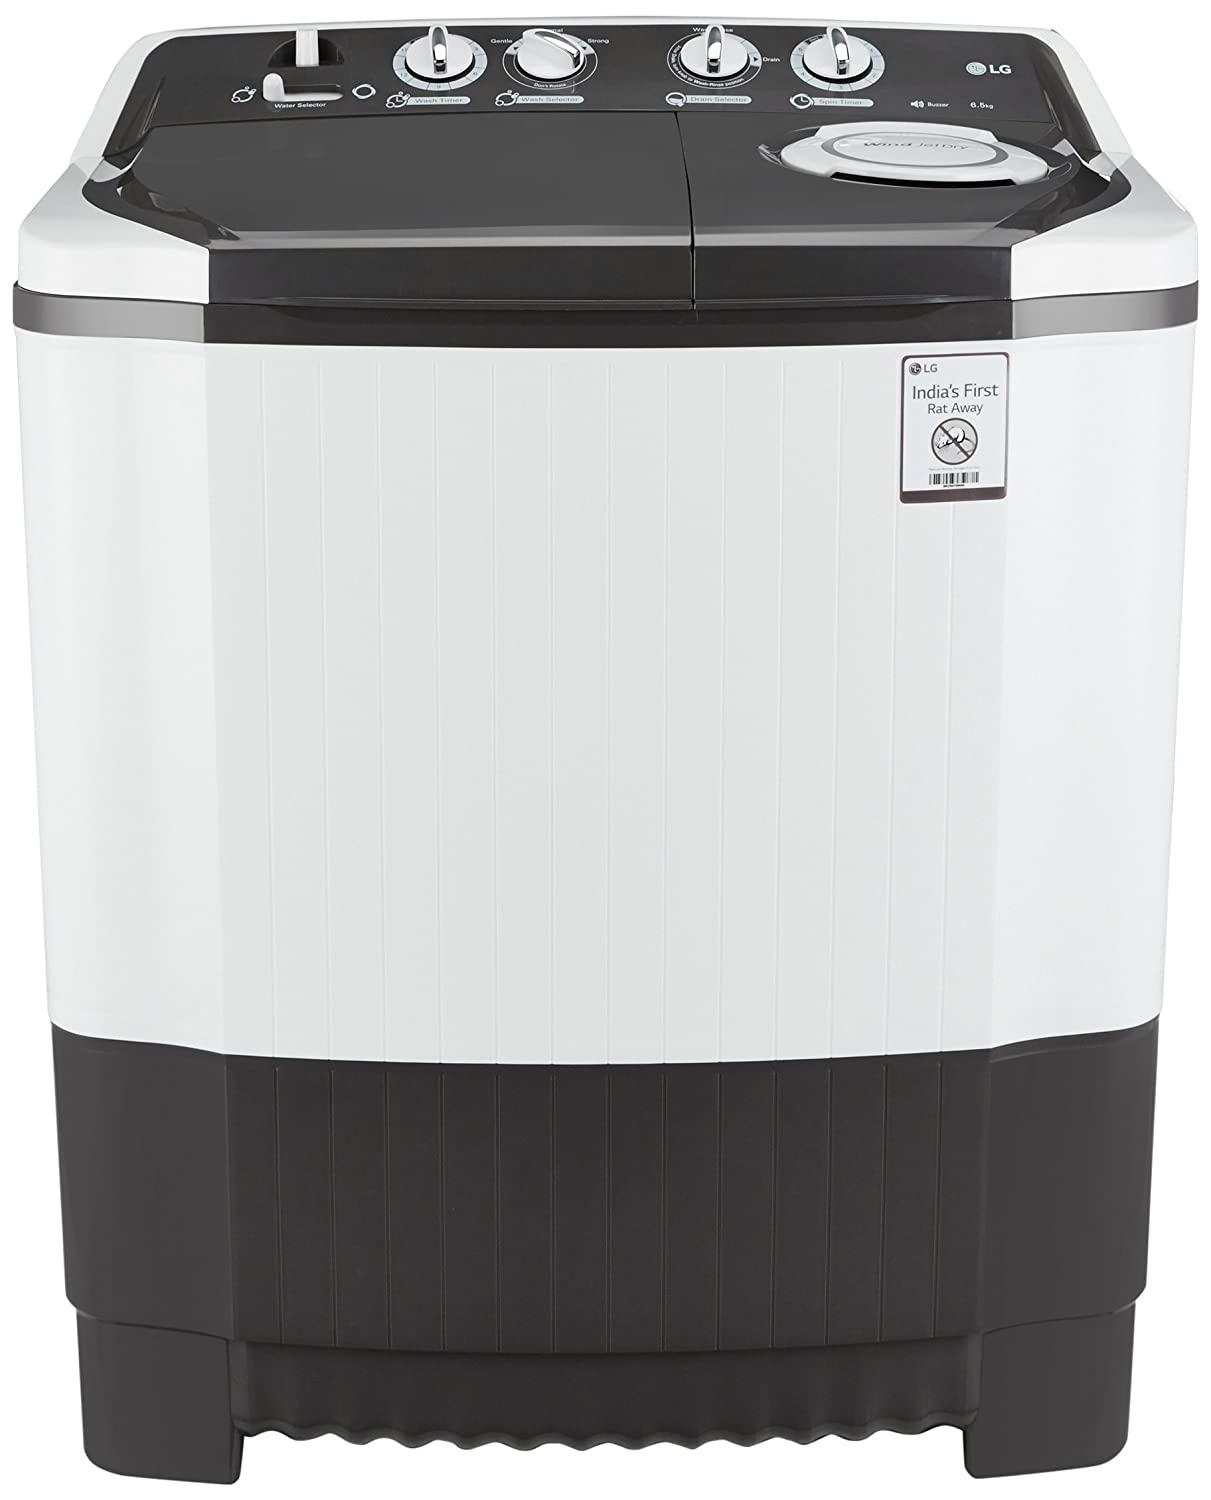 LG 6.5 Kg Semi Automatic Top Load Washing Machine